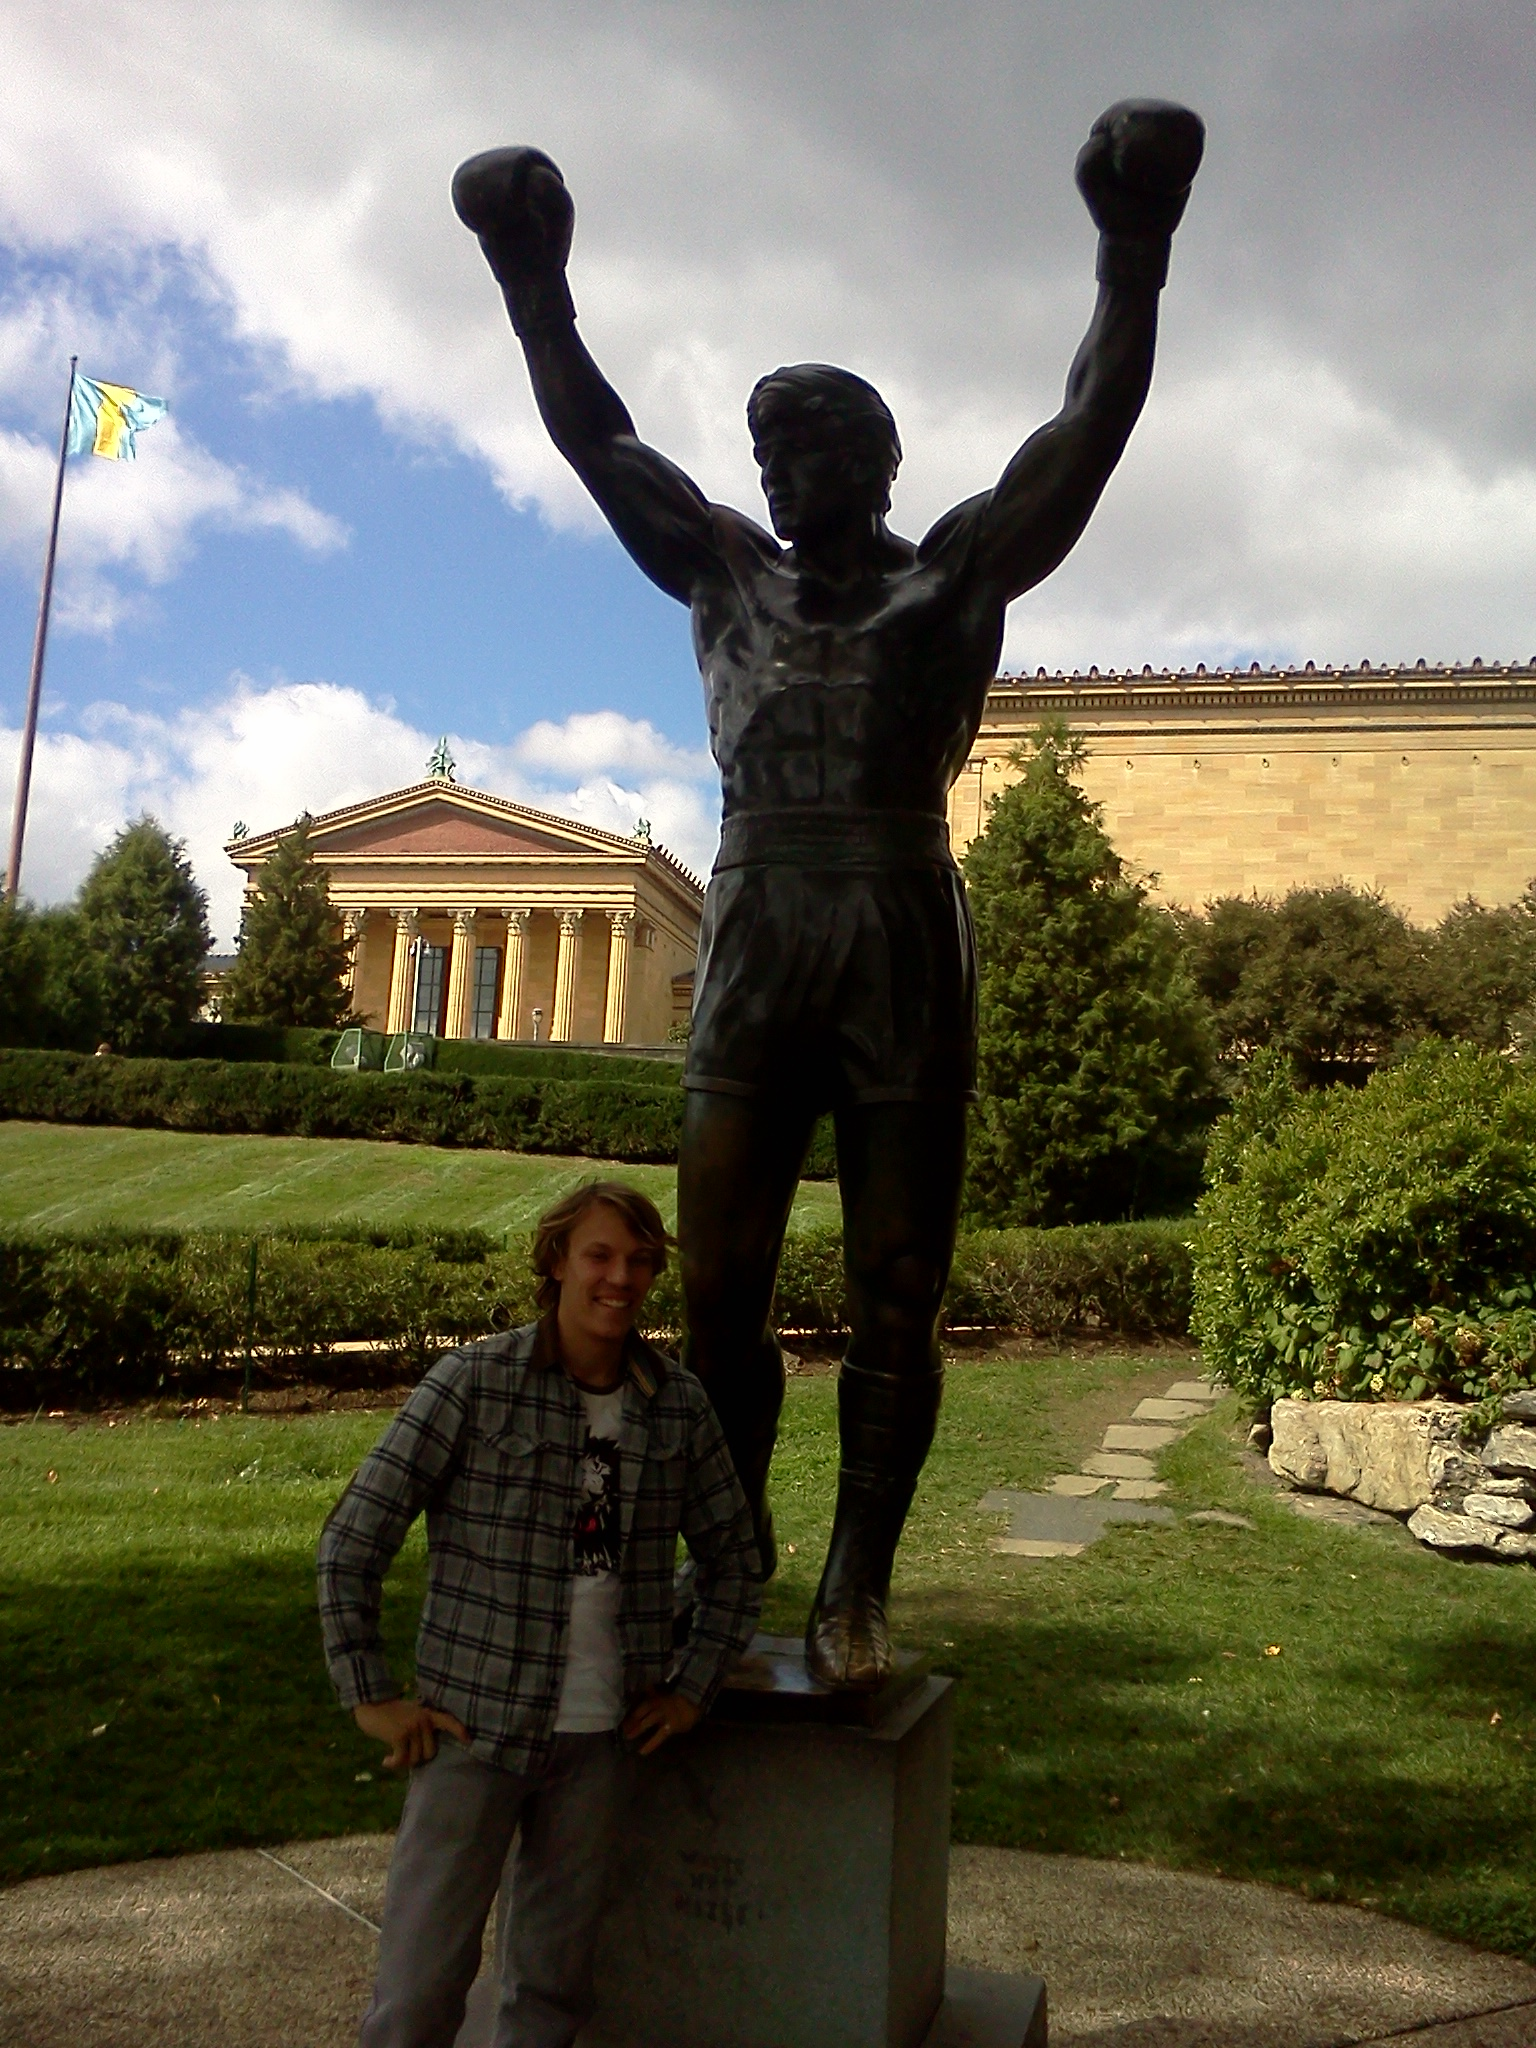 Kenya Medical Volunteer Ben Mcaskill at Philadelphia Rocky Statue